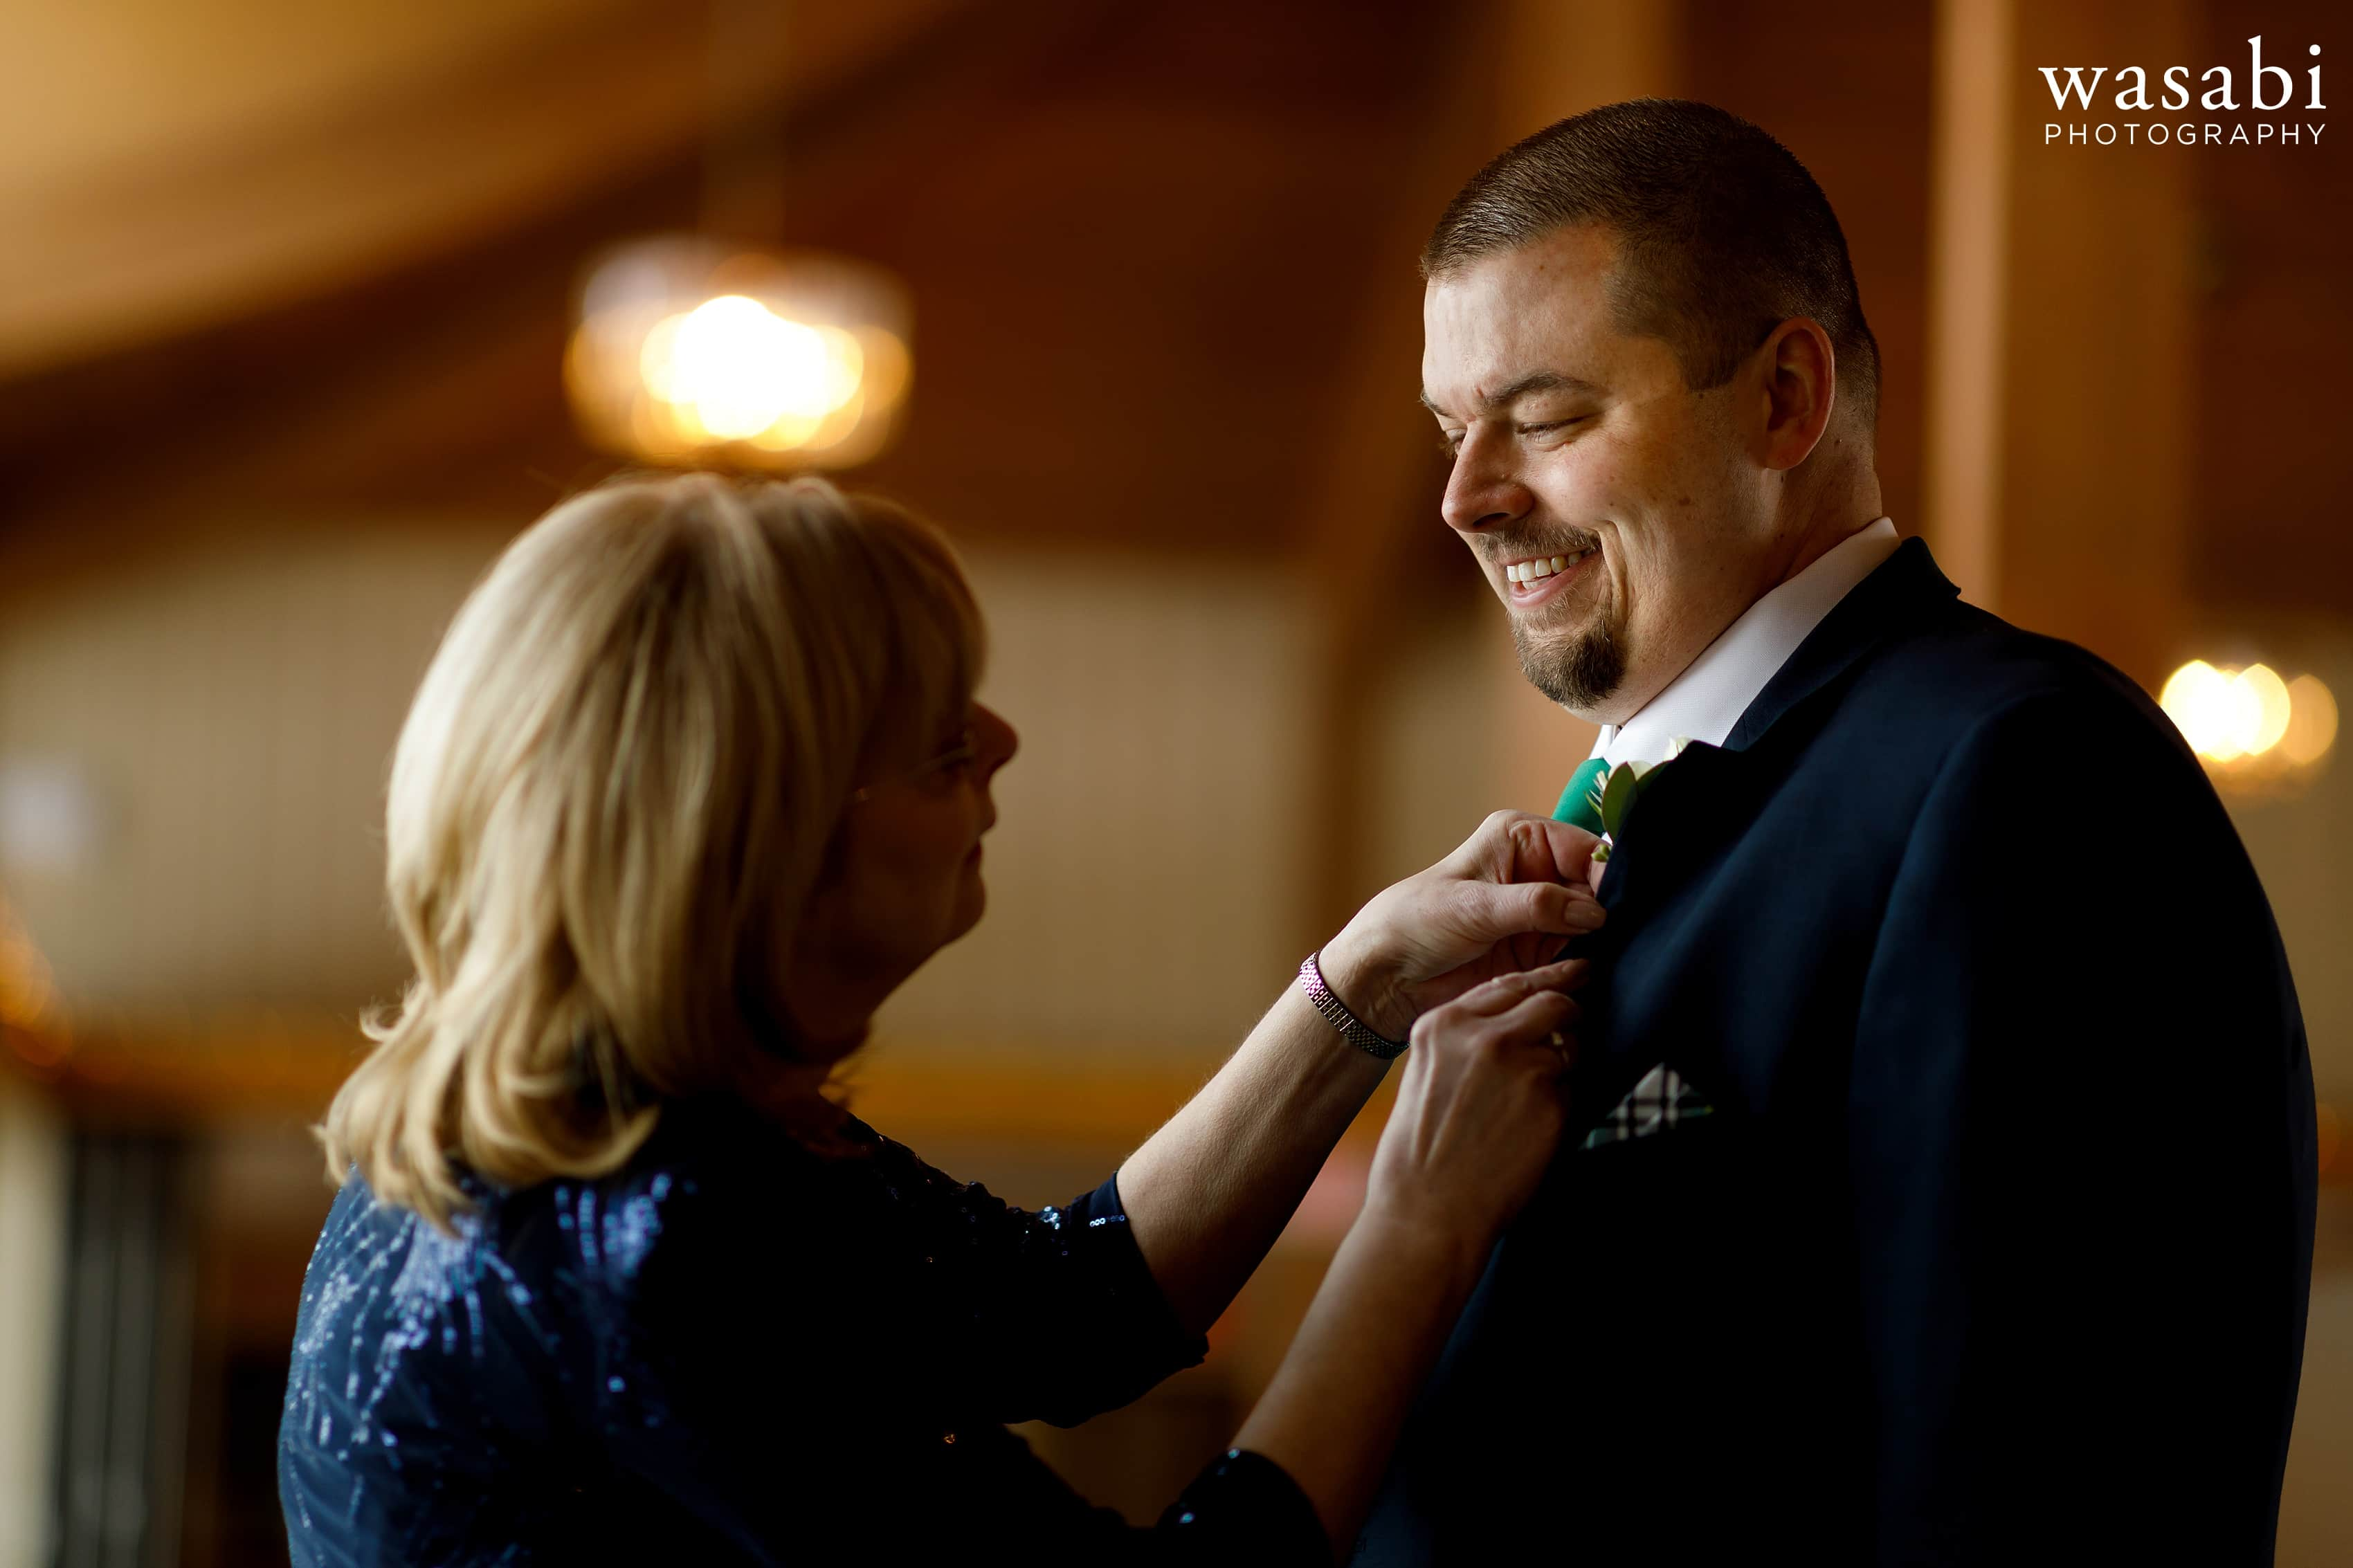 mother of groom puts boutonnière on son's jacket while getting ready for wedding